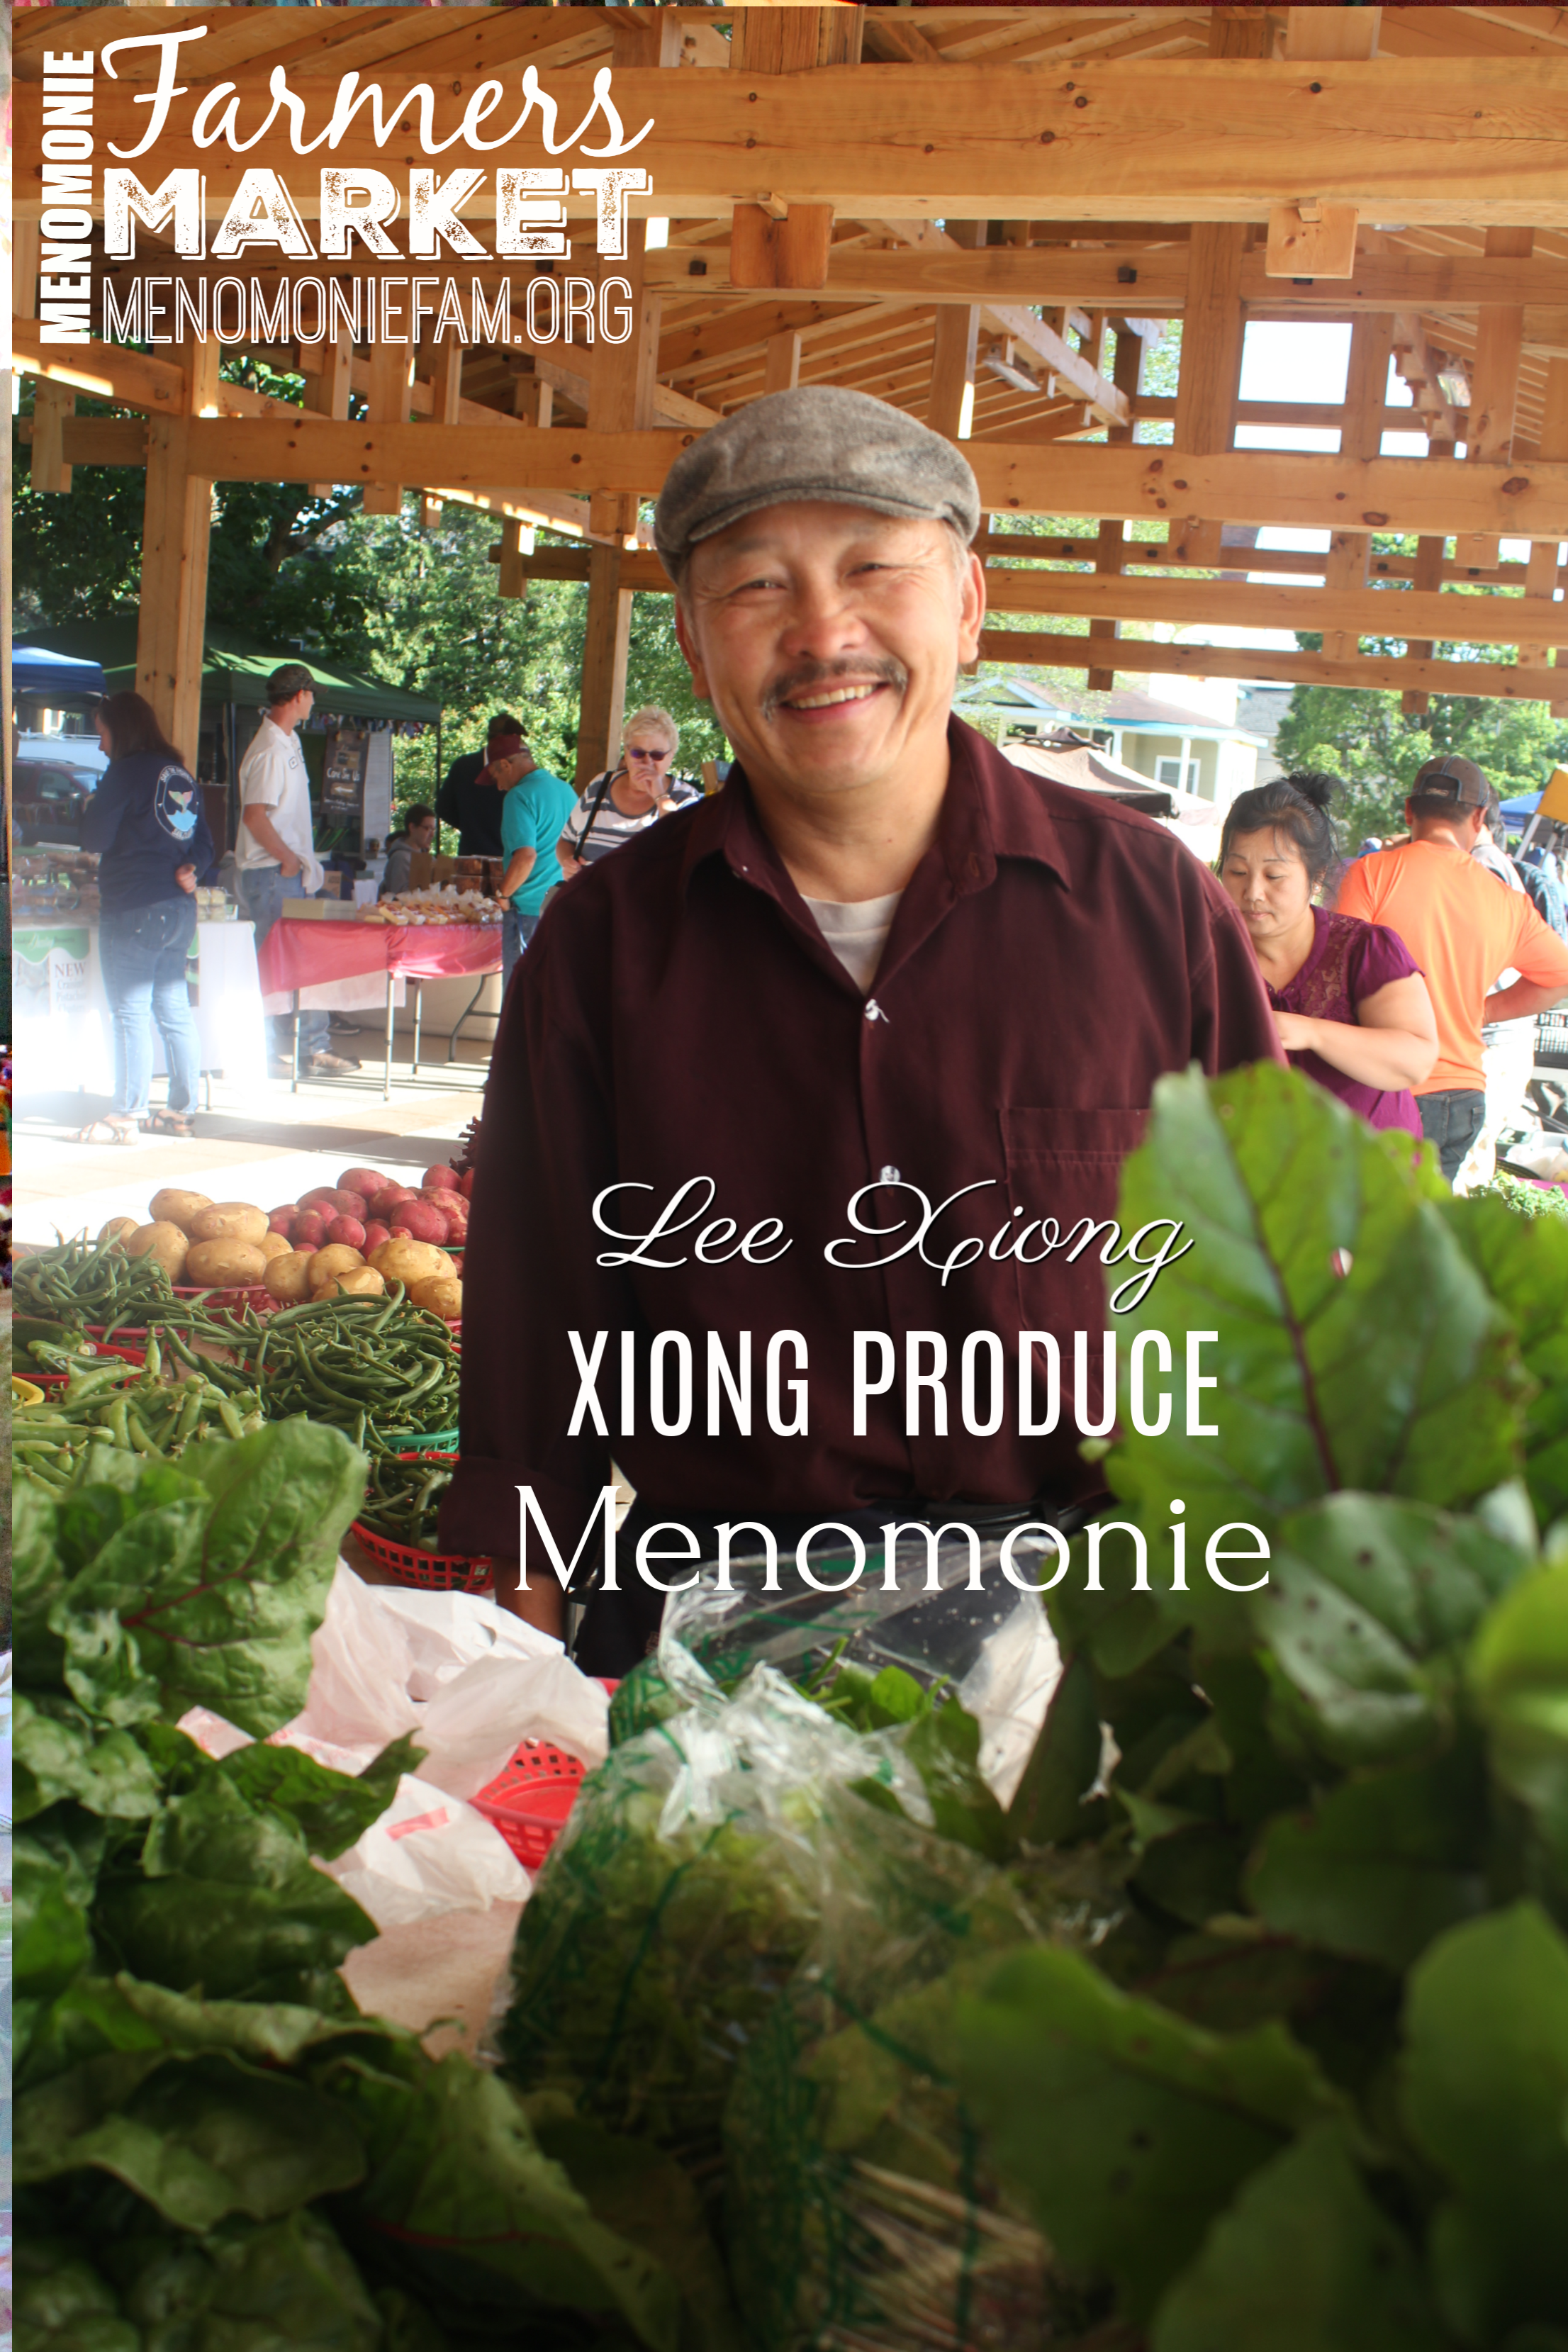 Xiong Produce